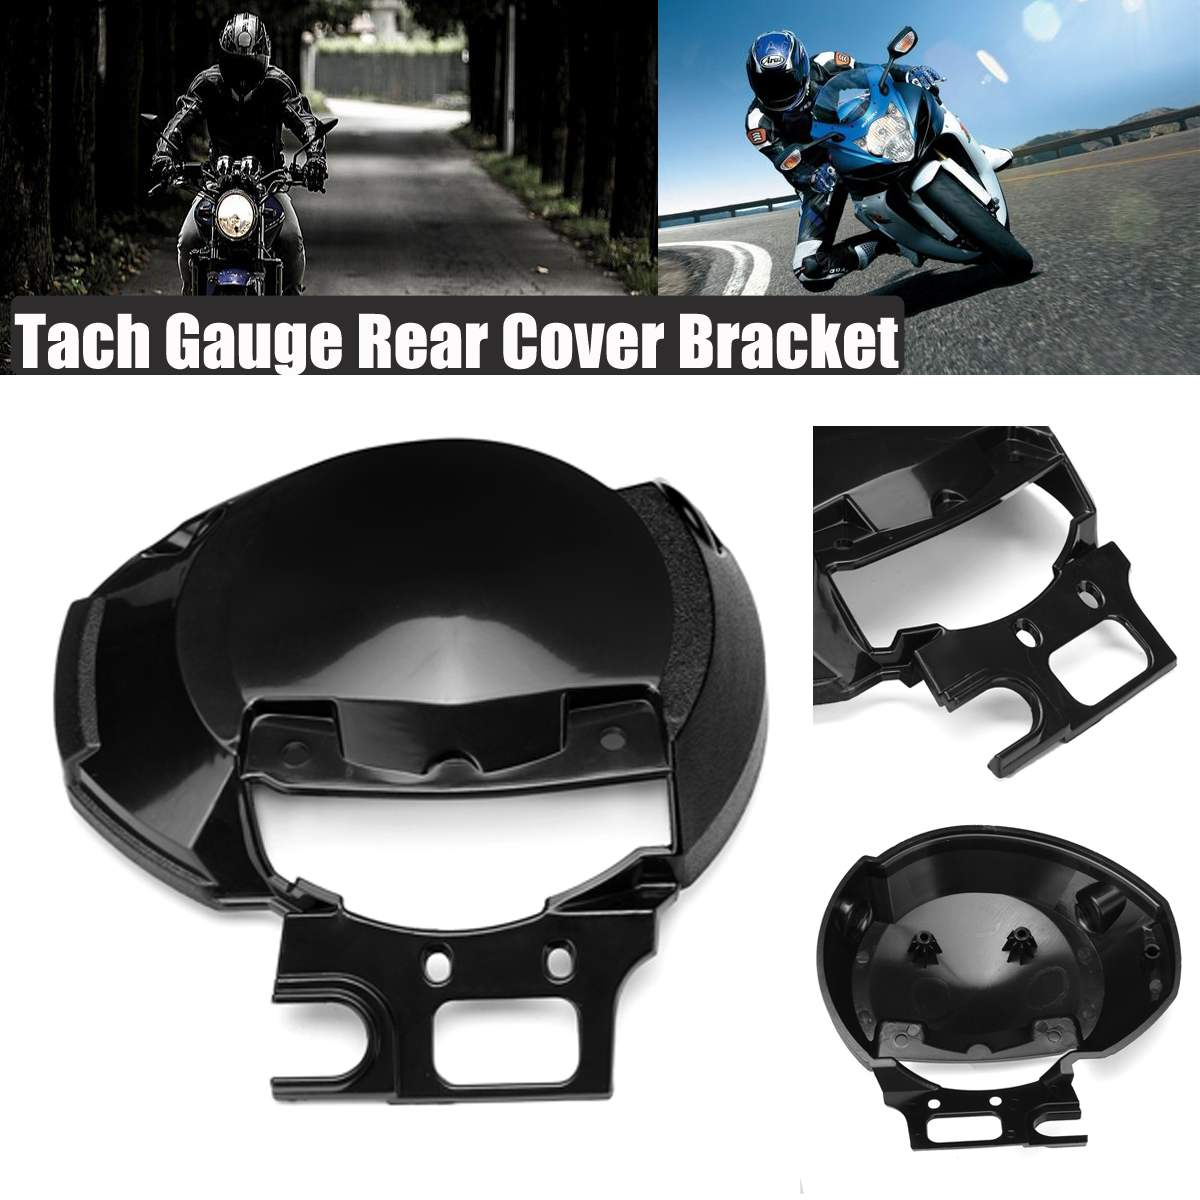 Motorcycle Bottom Speed Tach Gauge Rear Back Cover Bracket Headlight for <font><b>Yamaha</b></font> <font><b>FZ6</b></font> FZ6N 2004 2005 <font><b>2006</b></font> image